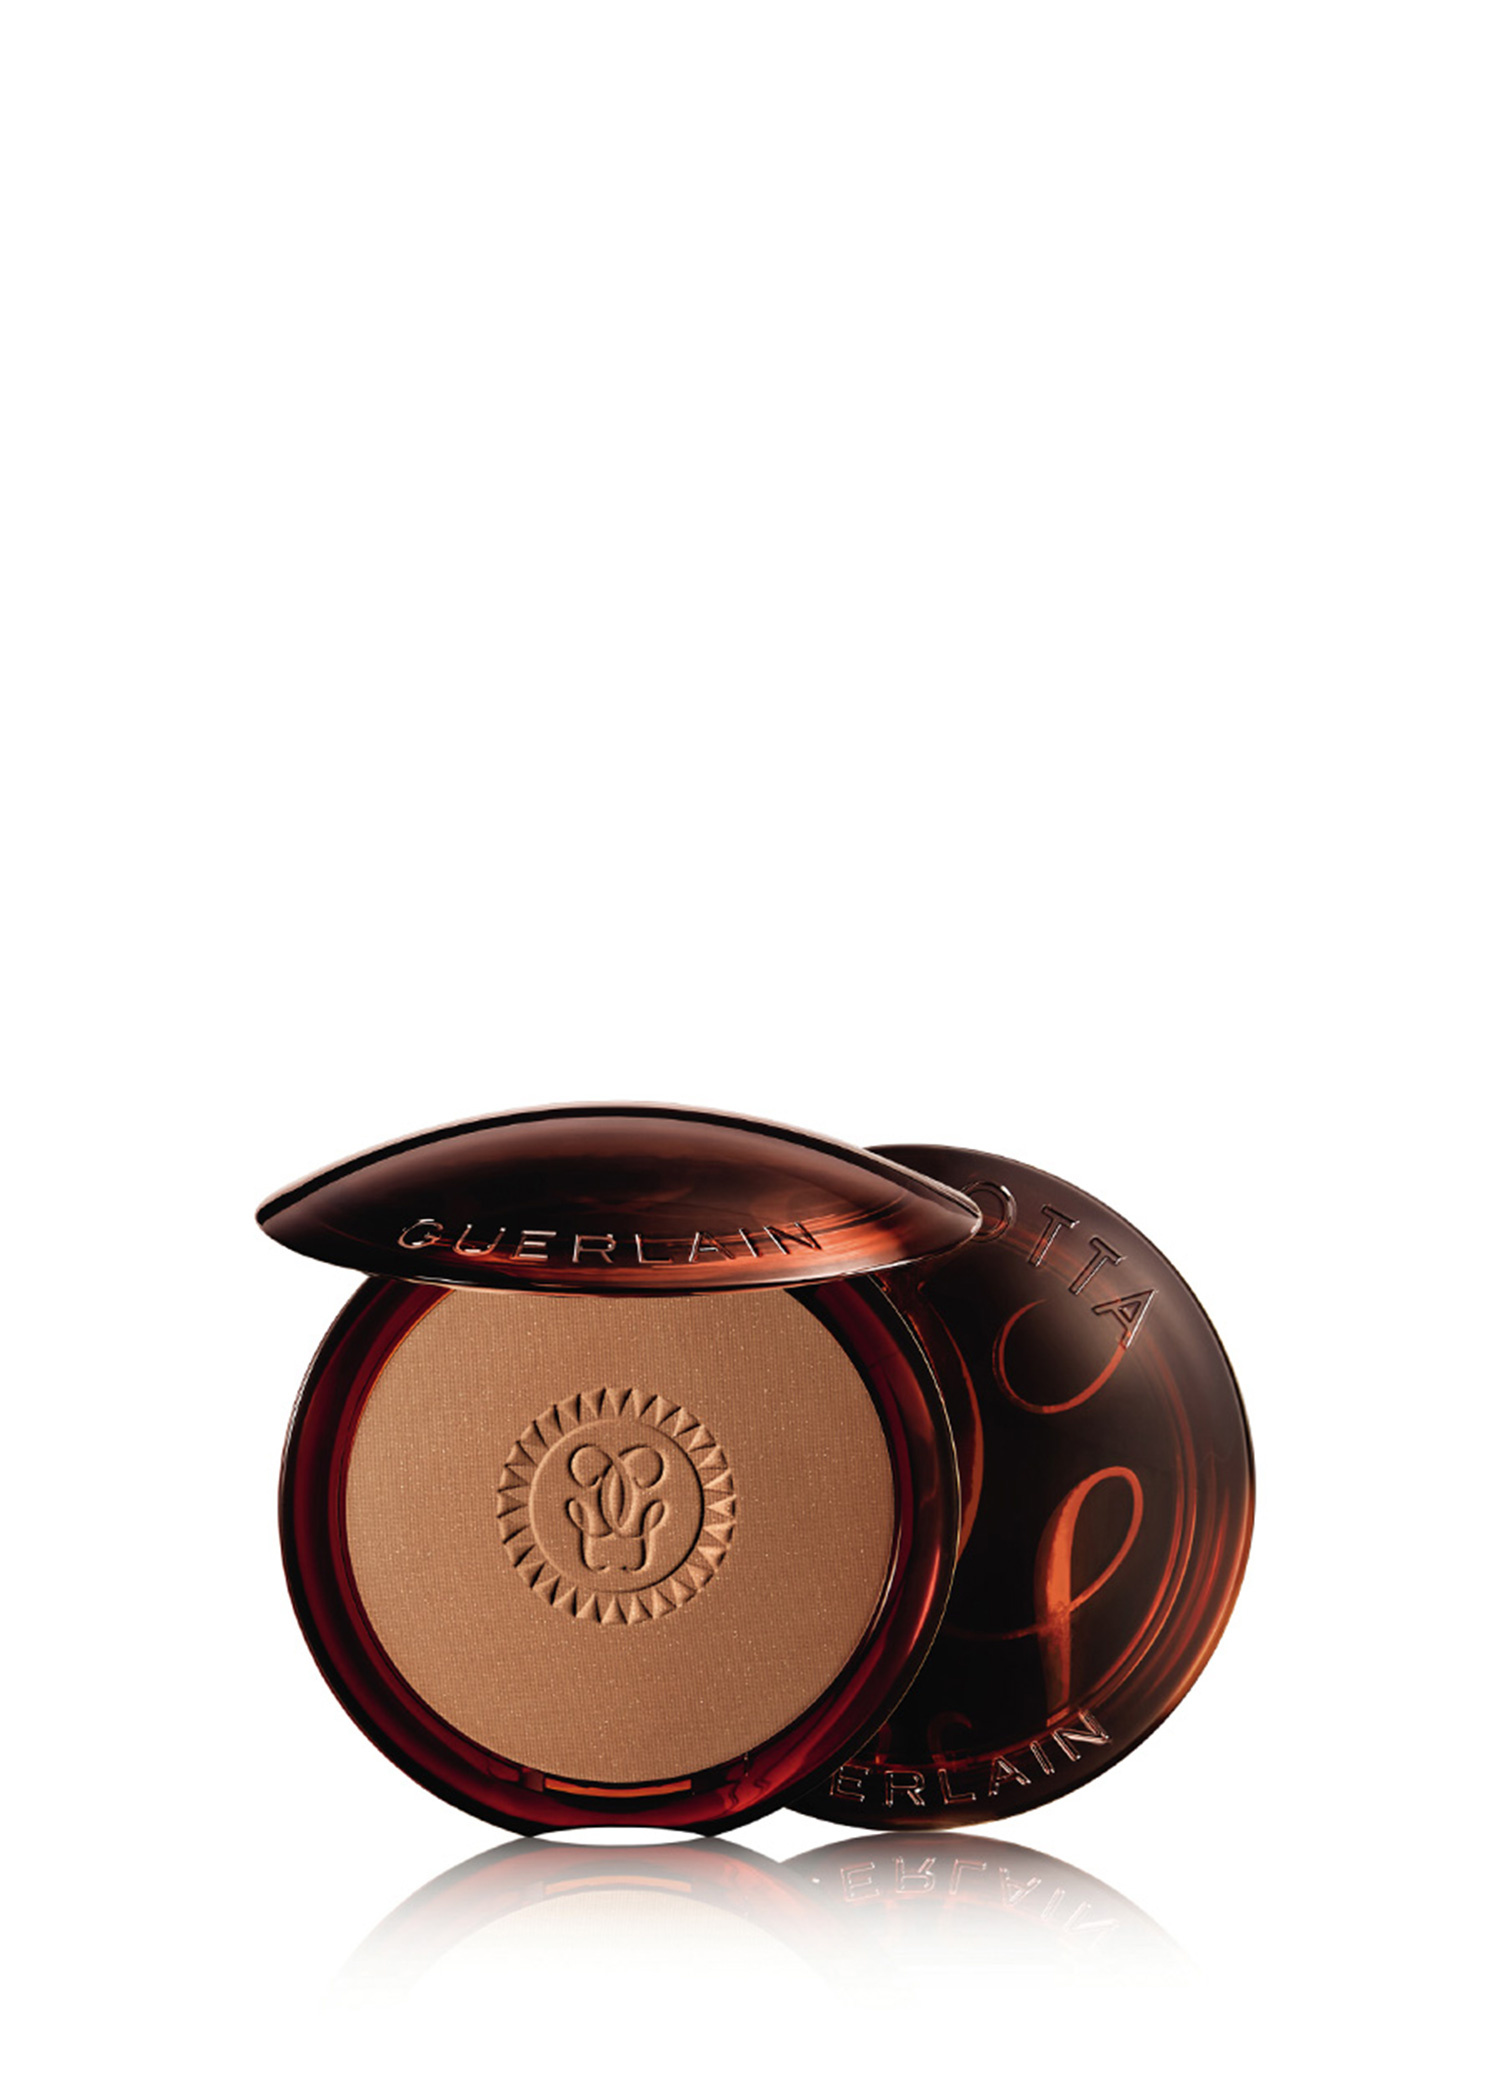 Guerlain - Terracotta Bronzing Powder 02 Natural Blondes ...